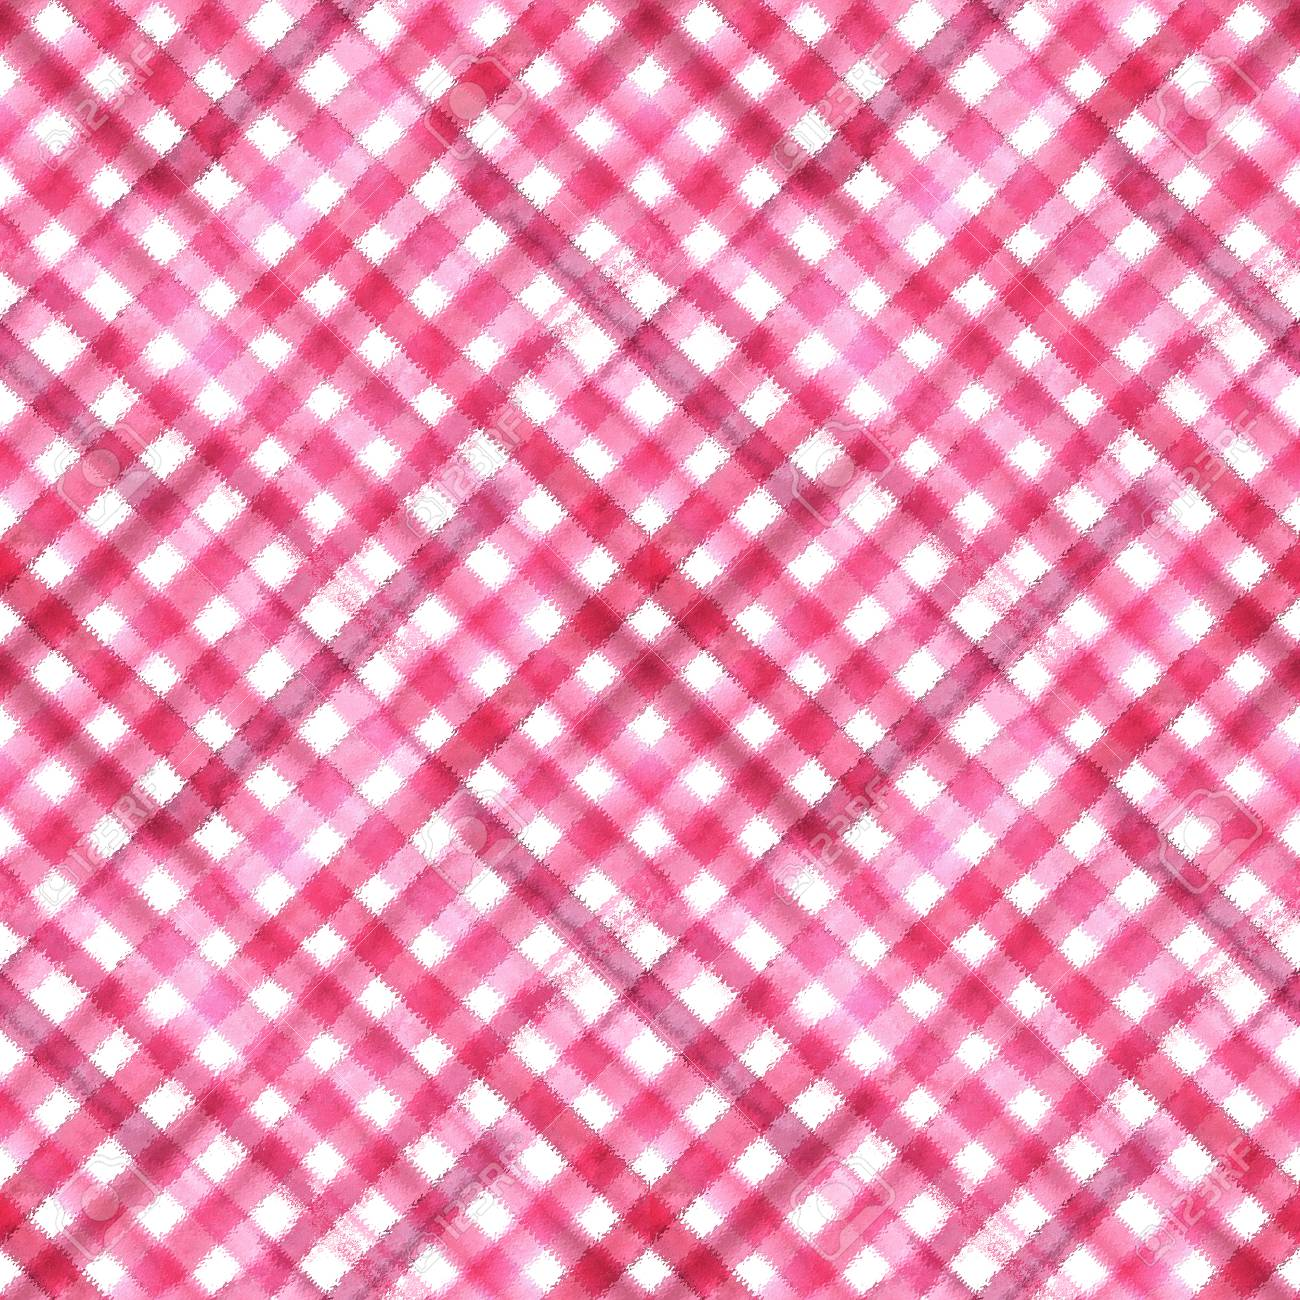 Pink And White Grunge Gingham Plaid Ripply Diagonal Abstract Geometric Seamless Pattern Background Watercolor Hand